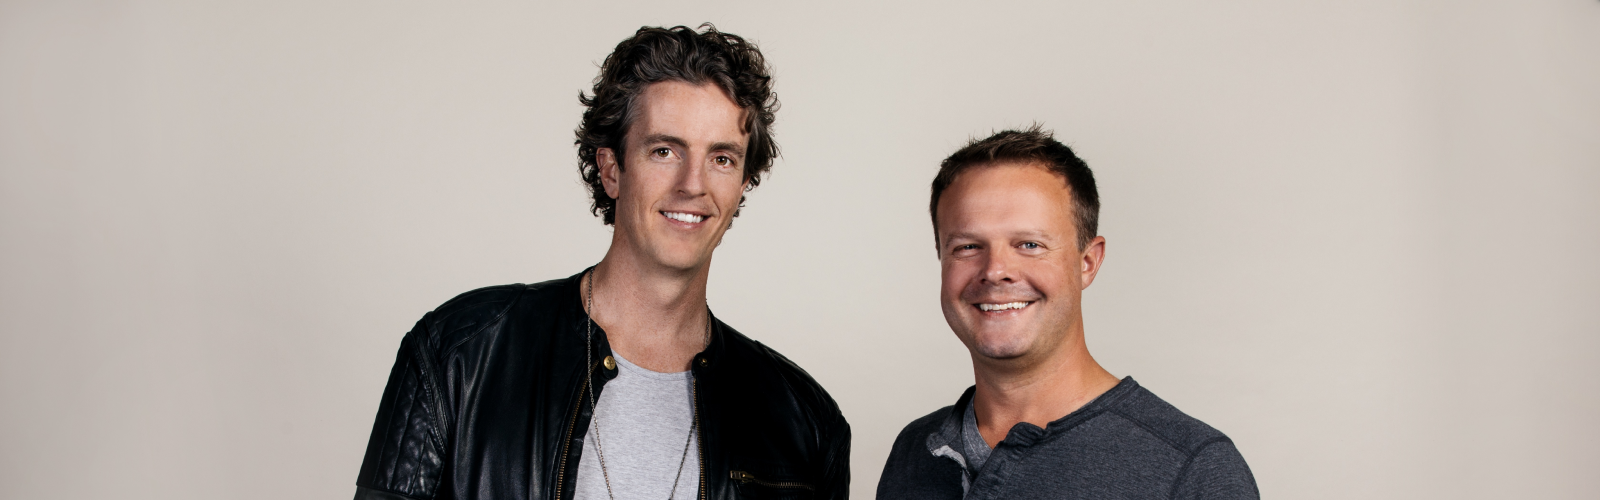 How We Raised $20M for Our Startup in the Middle of a Pandemic Braintrust blog banner